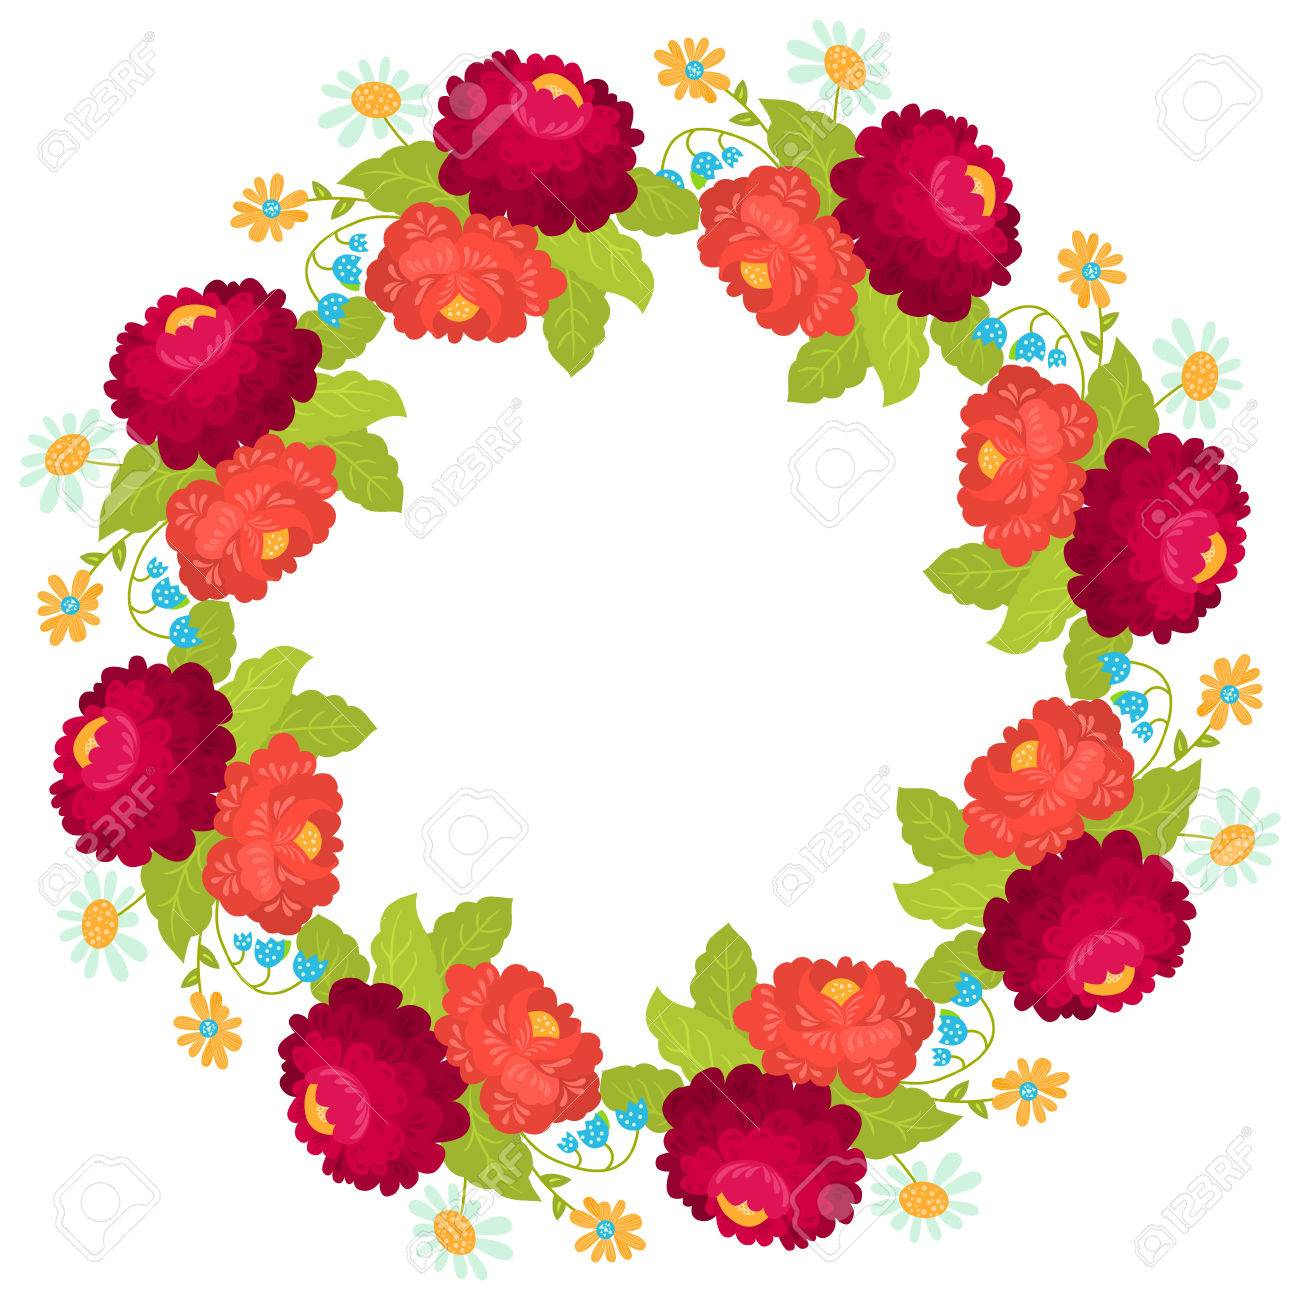 Postcard With Floral Wreath Illustration Can Be Used As Card